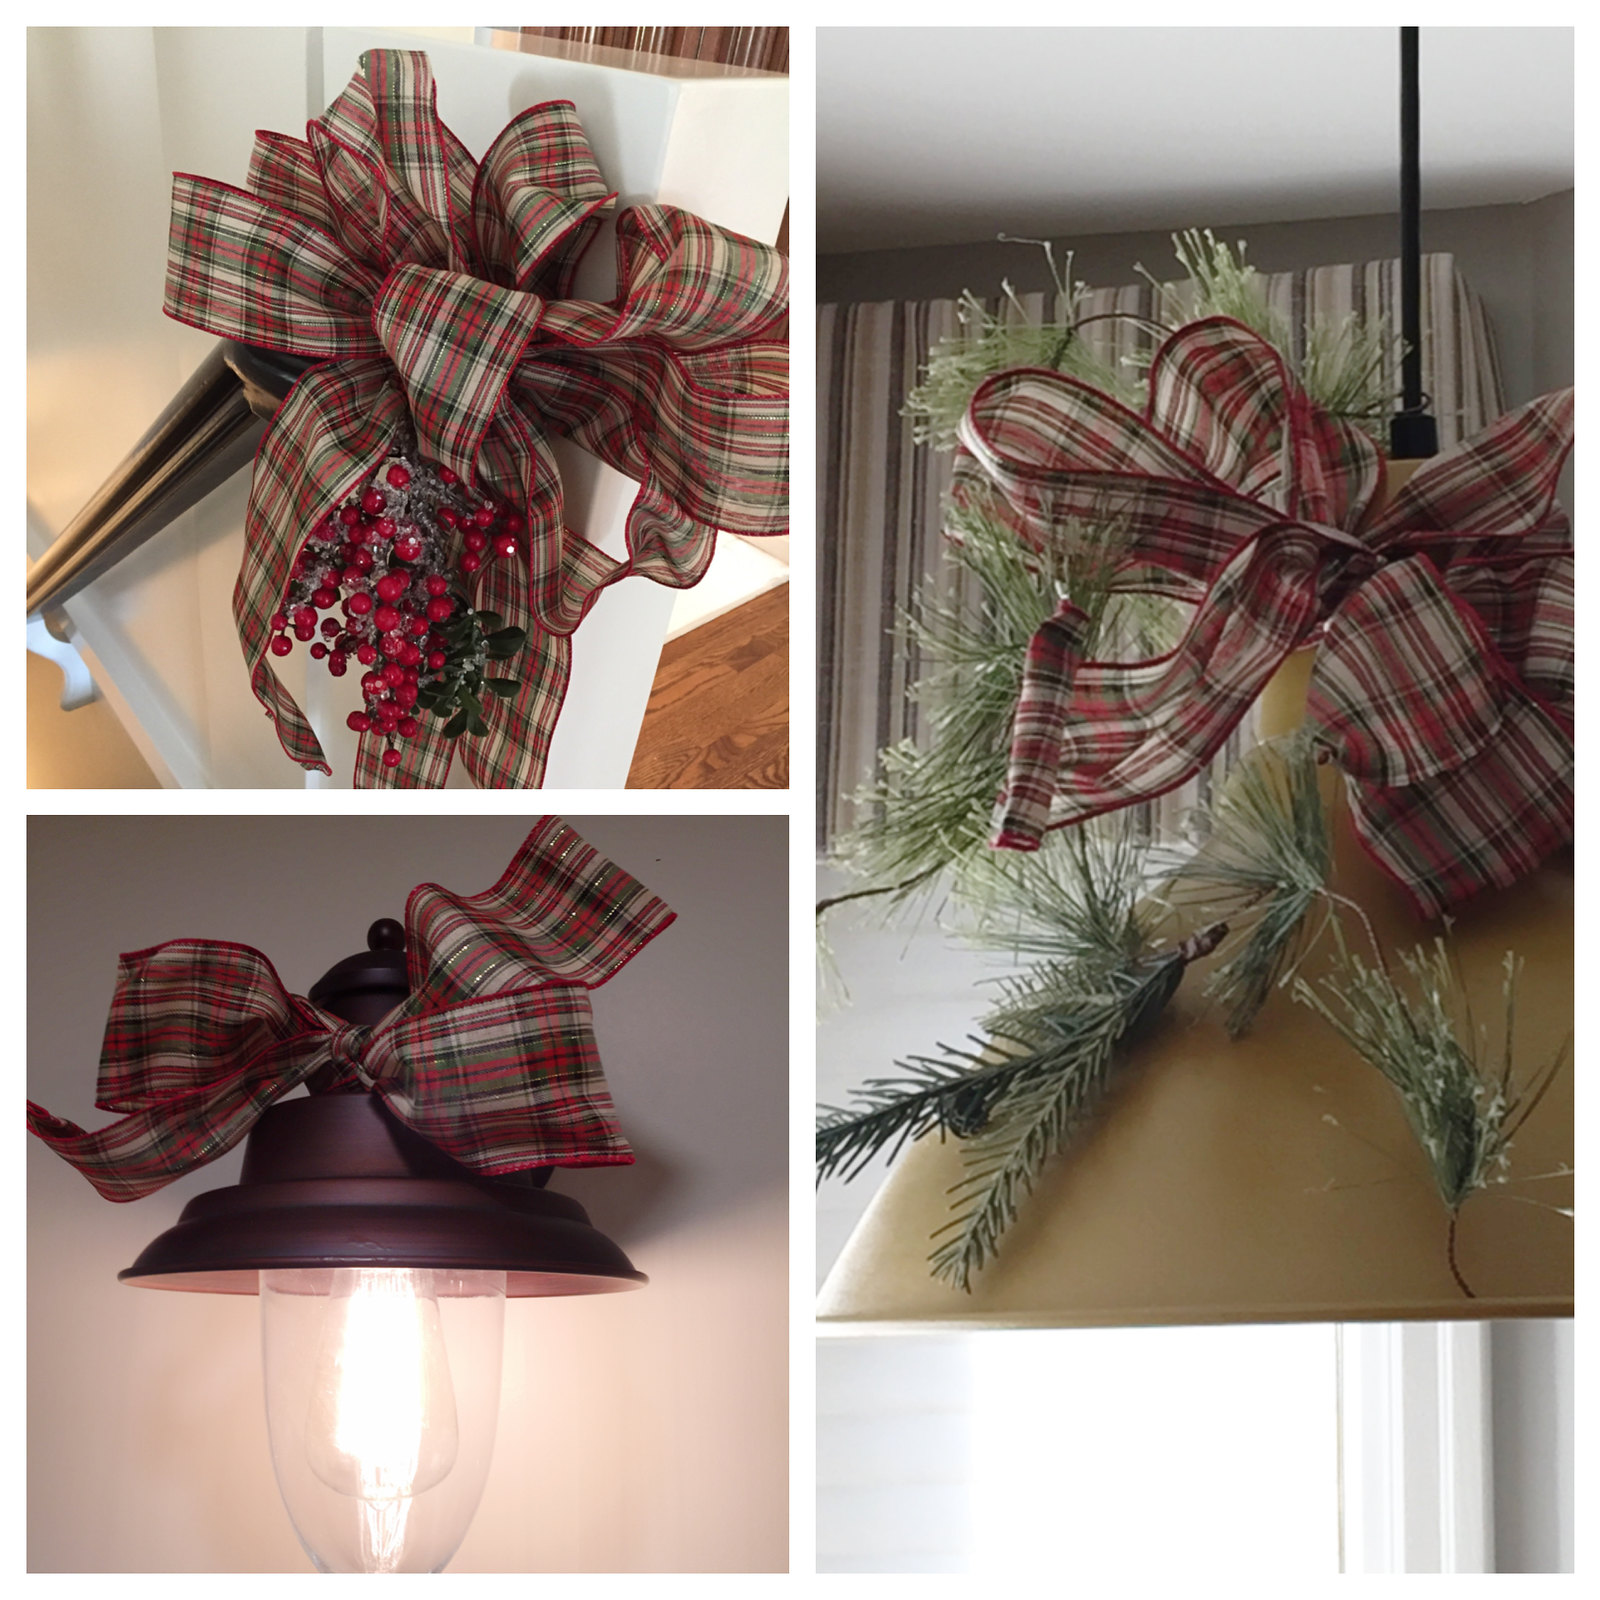 simple ways to decorate with ribbon at Christmas